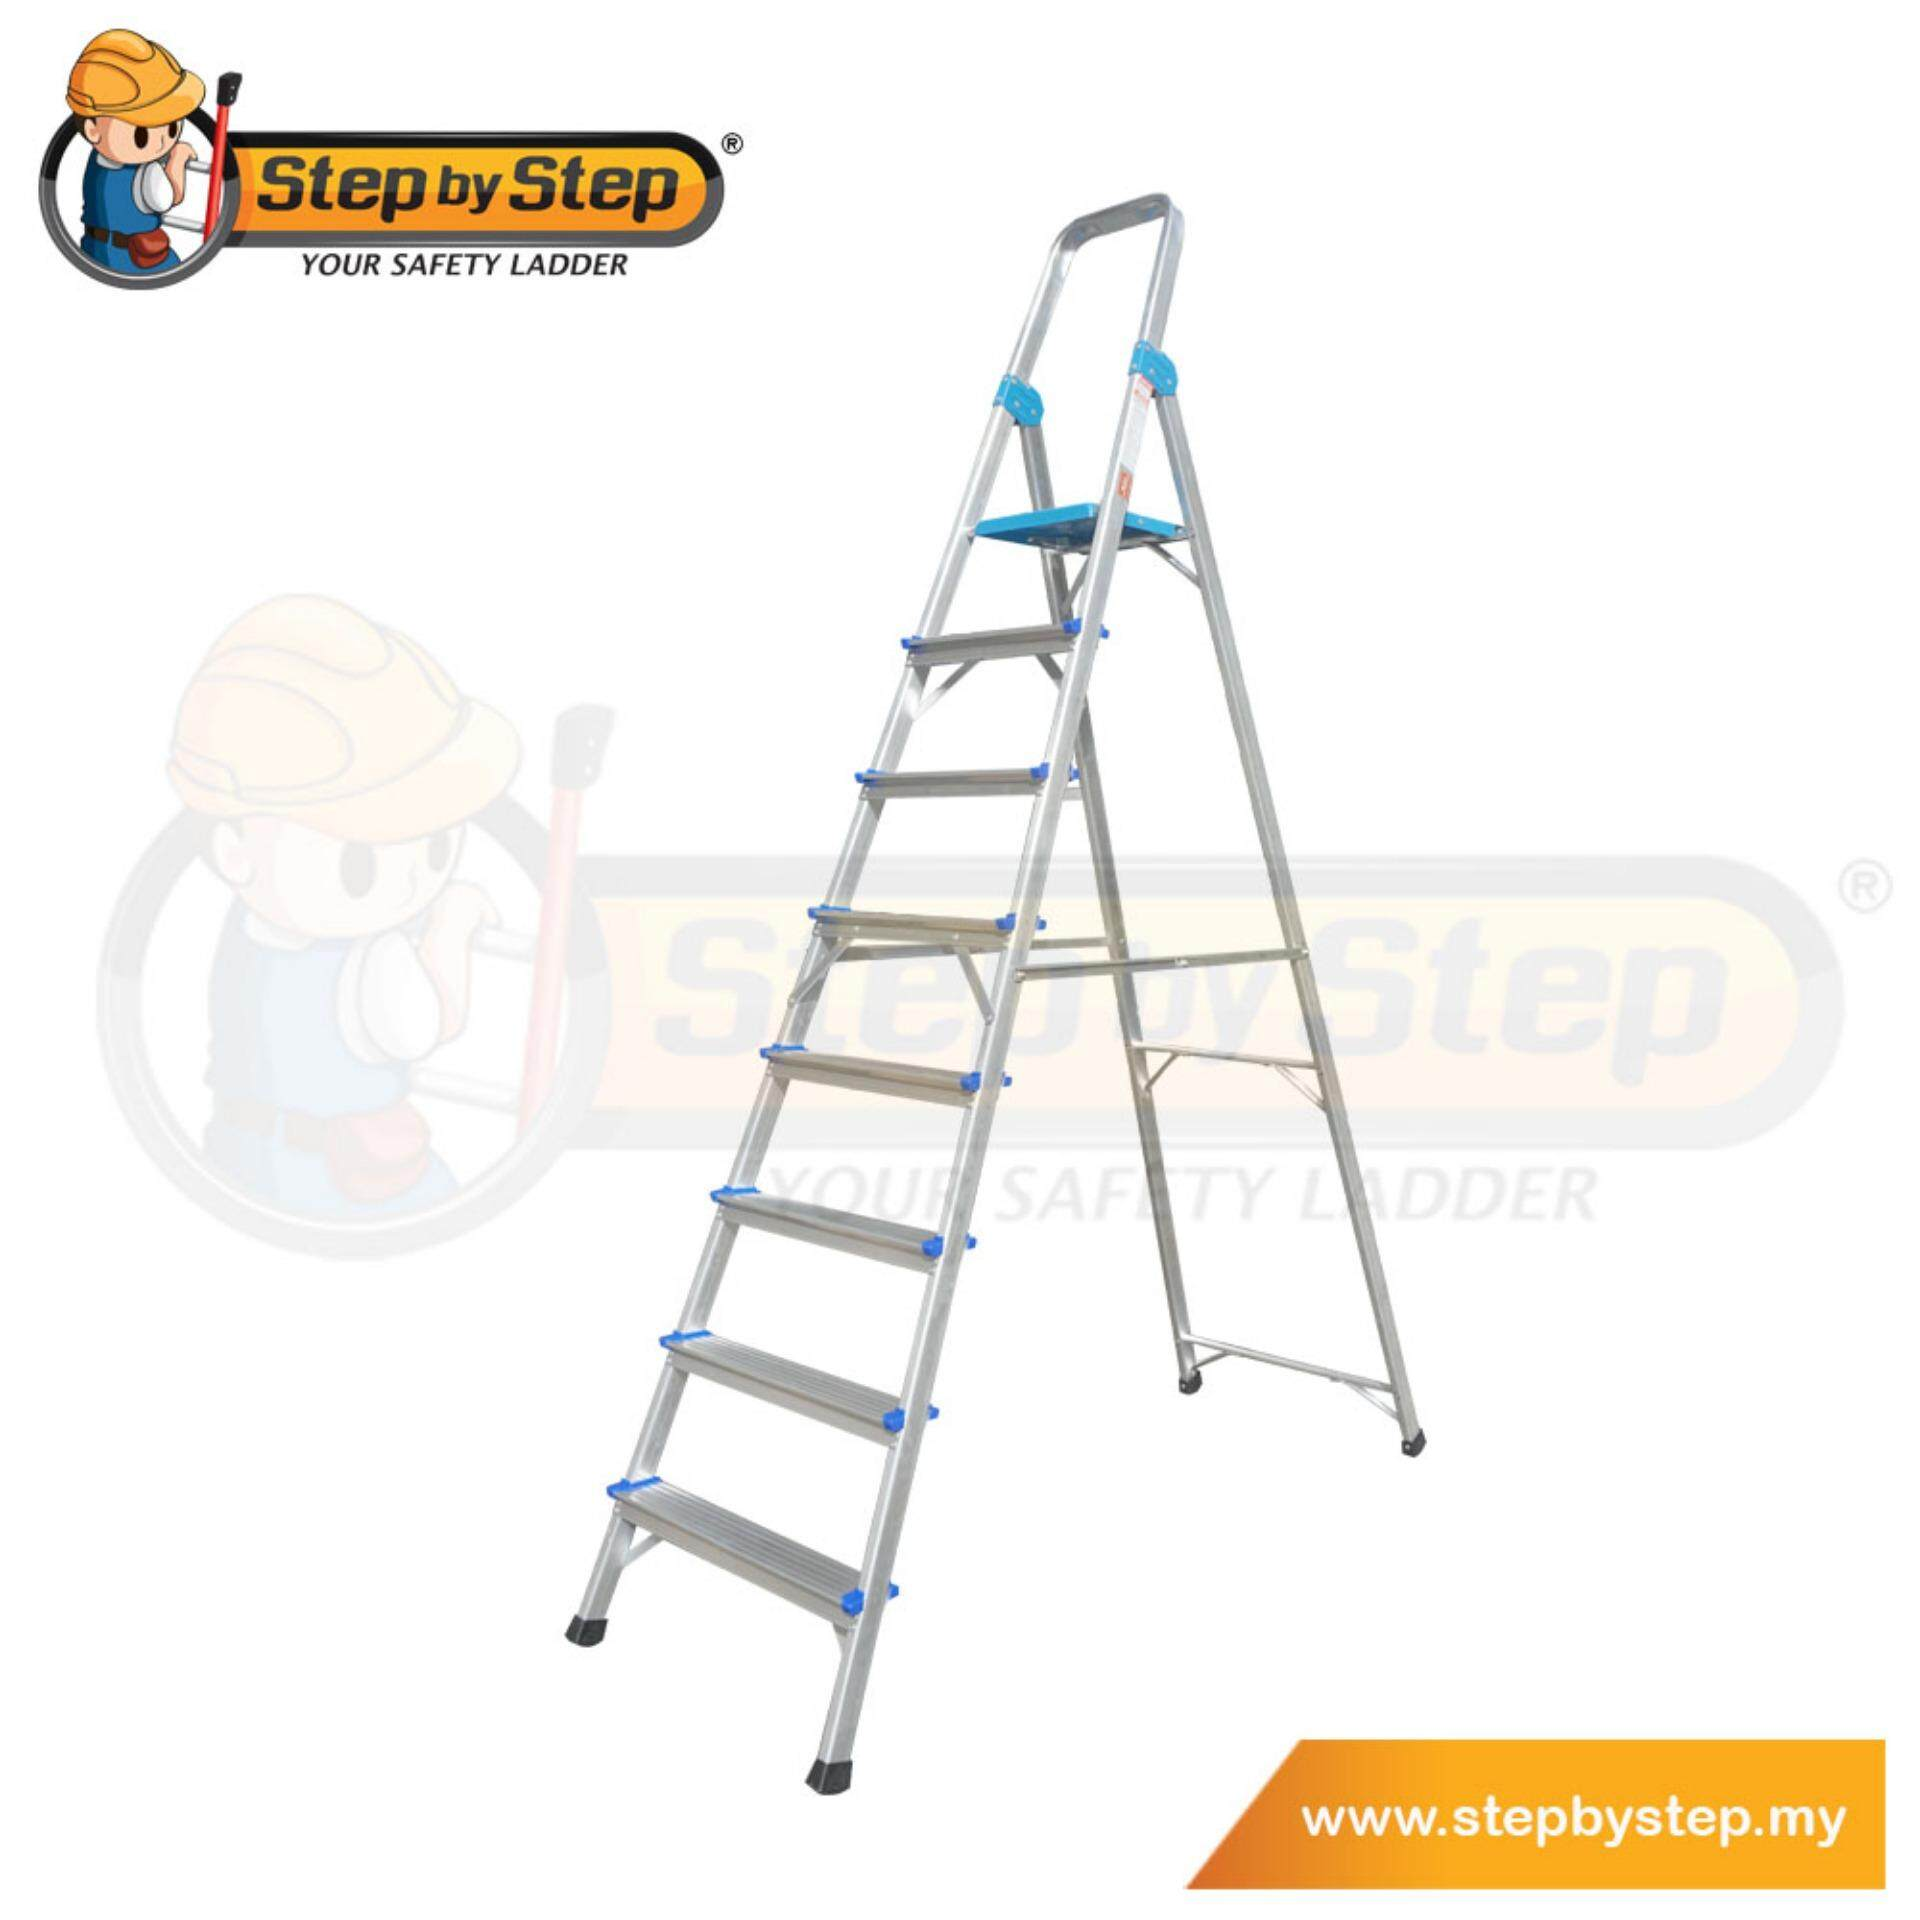 Step by Step Aluminium Queen Ladder with Handrail (QL08) - 8 Steps